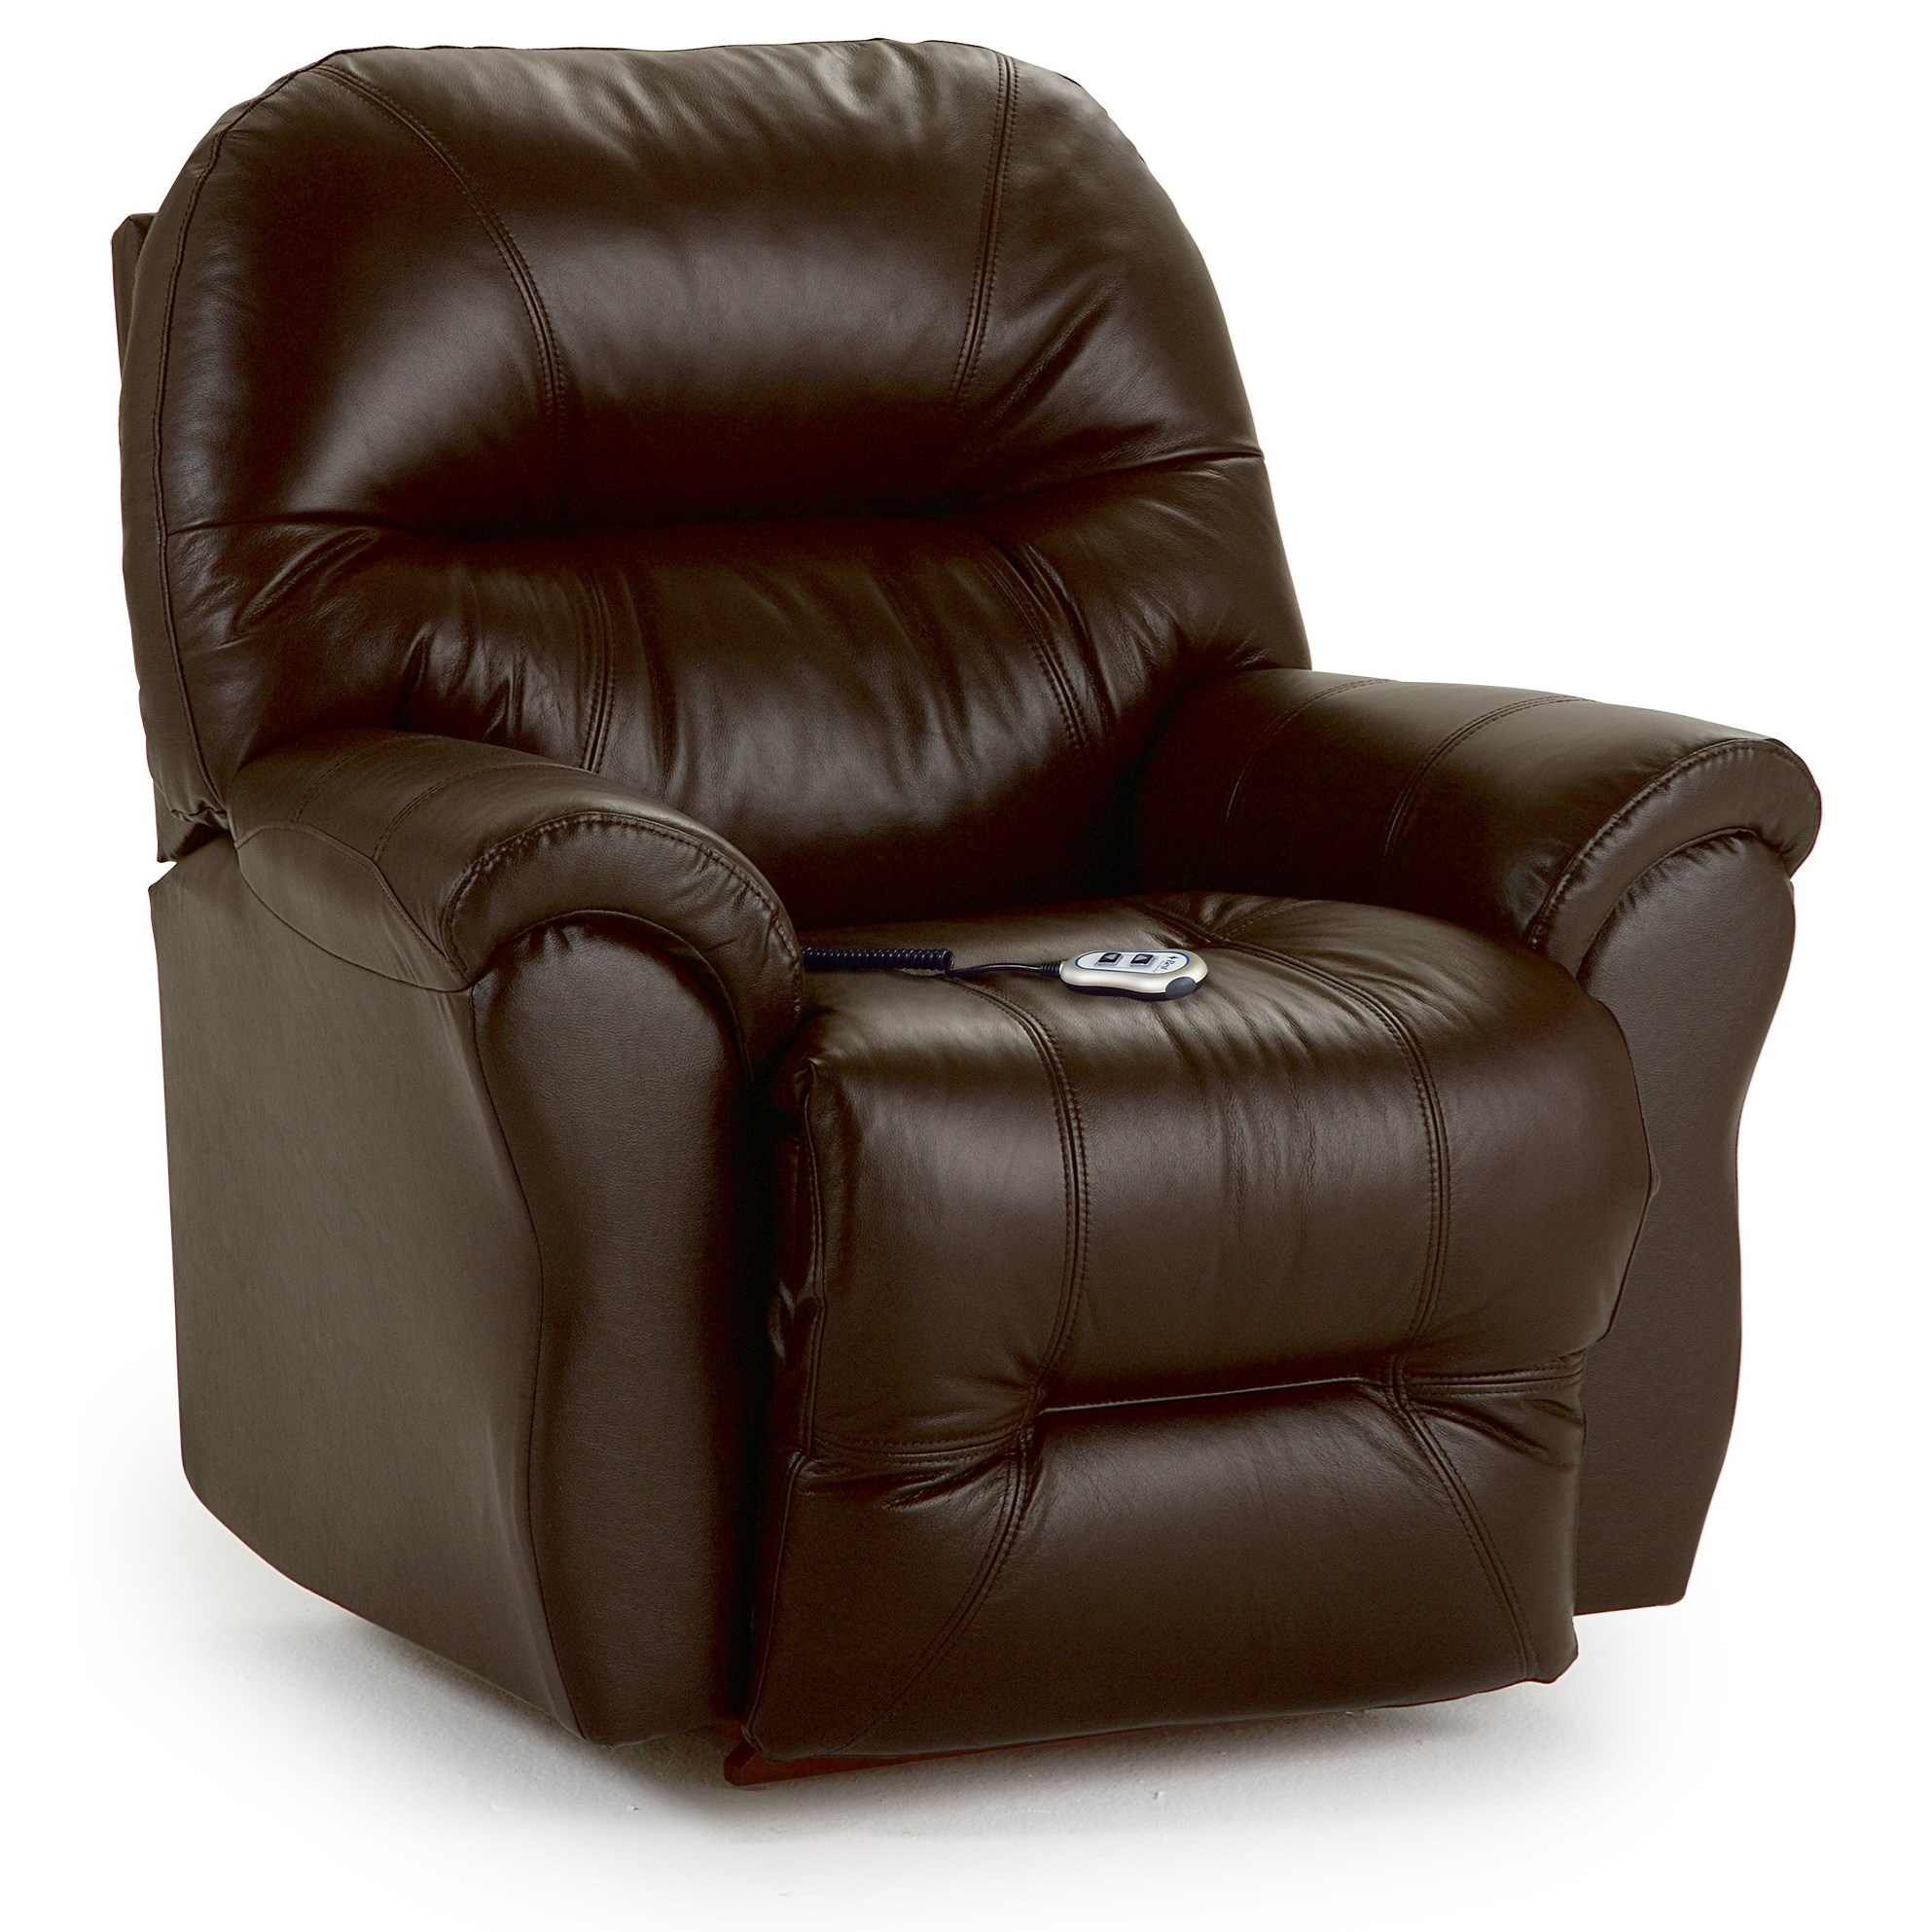 Bodie Power Lift Recliner by Best Home Furnishings at Best Home Furnishings